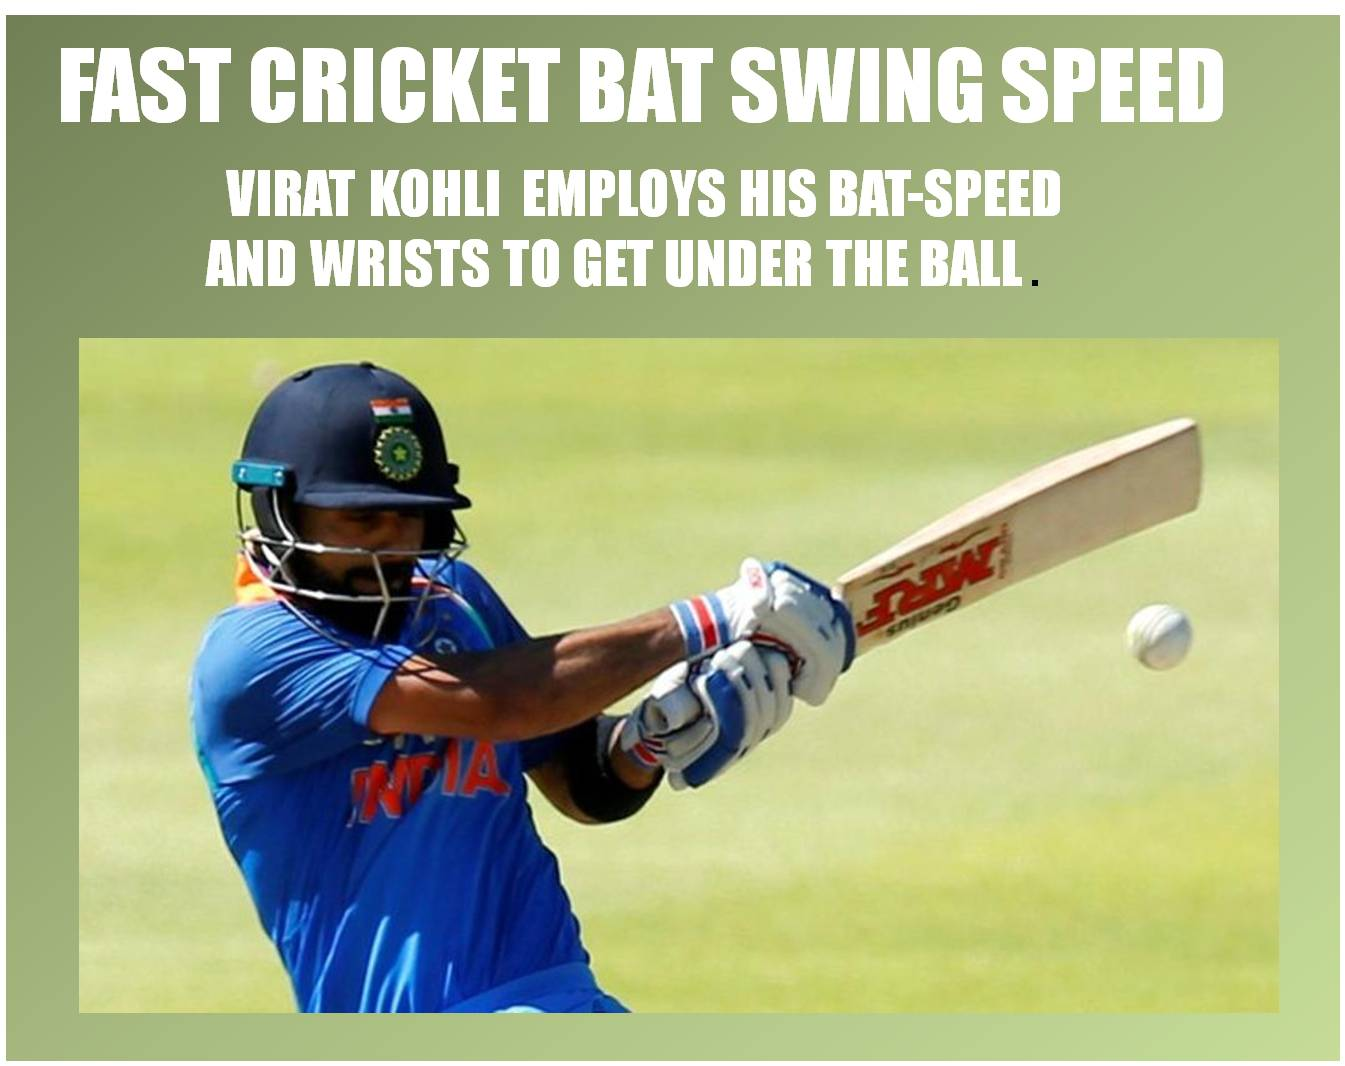 MRF_VIRAT_KHOLI_PLAYING_STYLE_FAST_CRICKET_BAT_SWING_SPEED